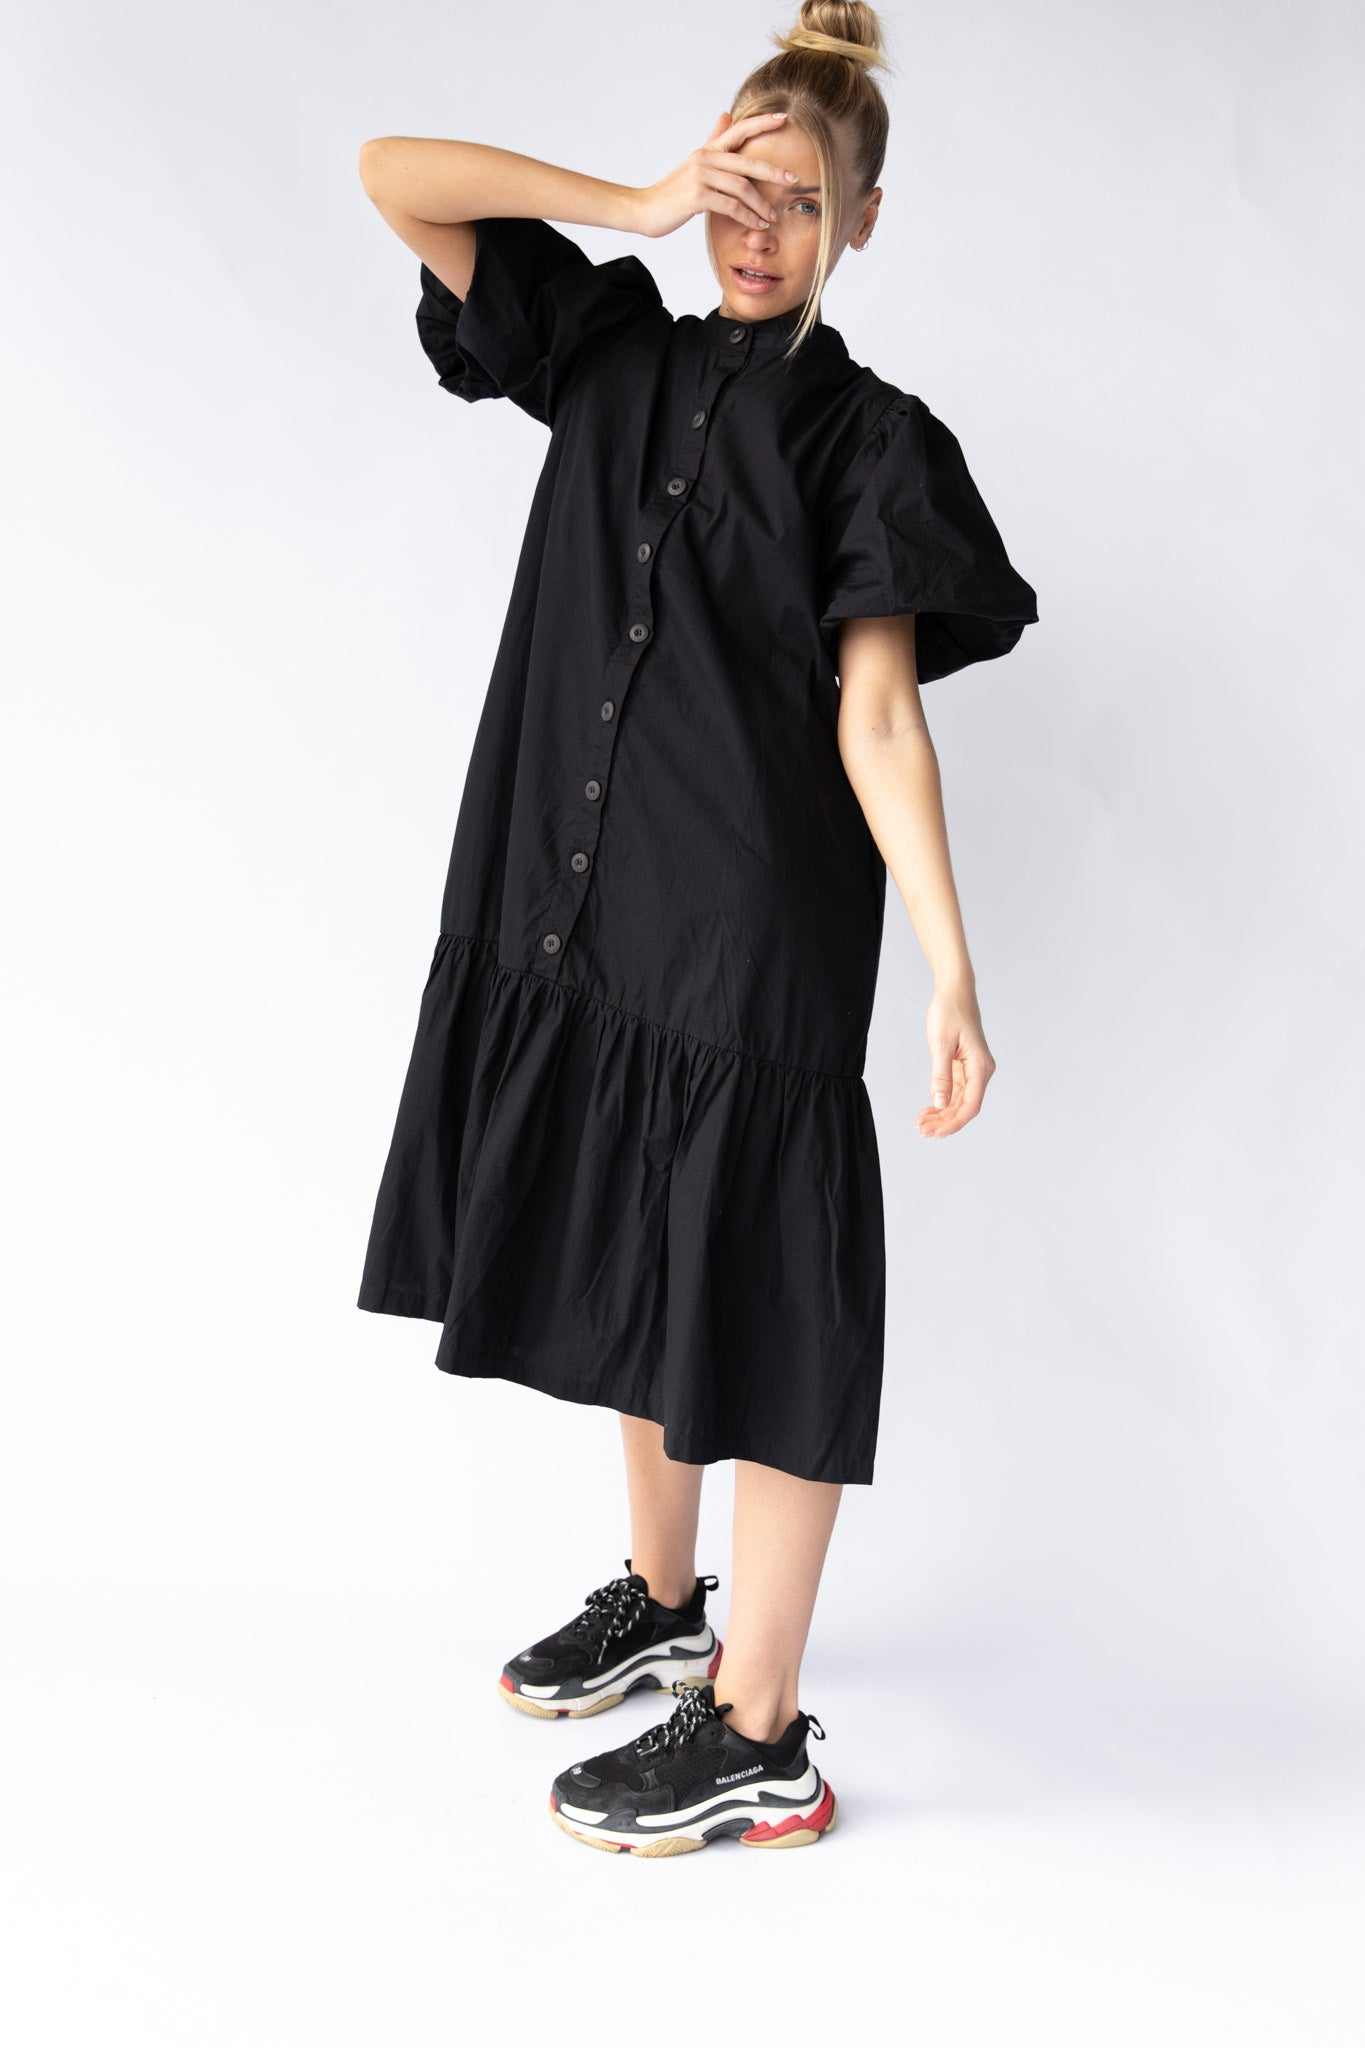 WALDEN DRESS - BLACK